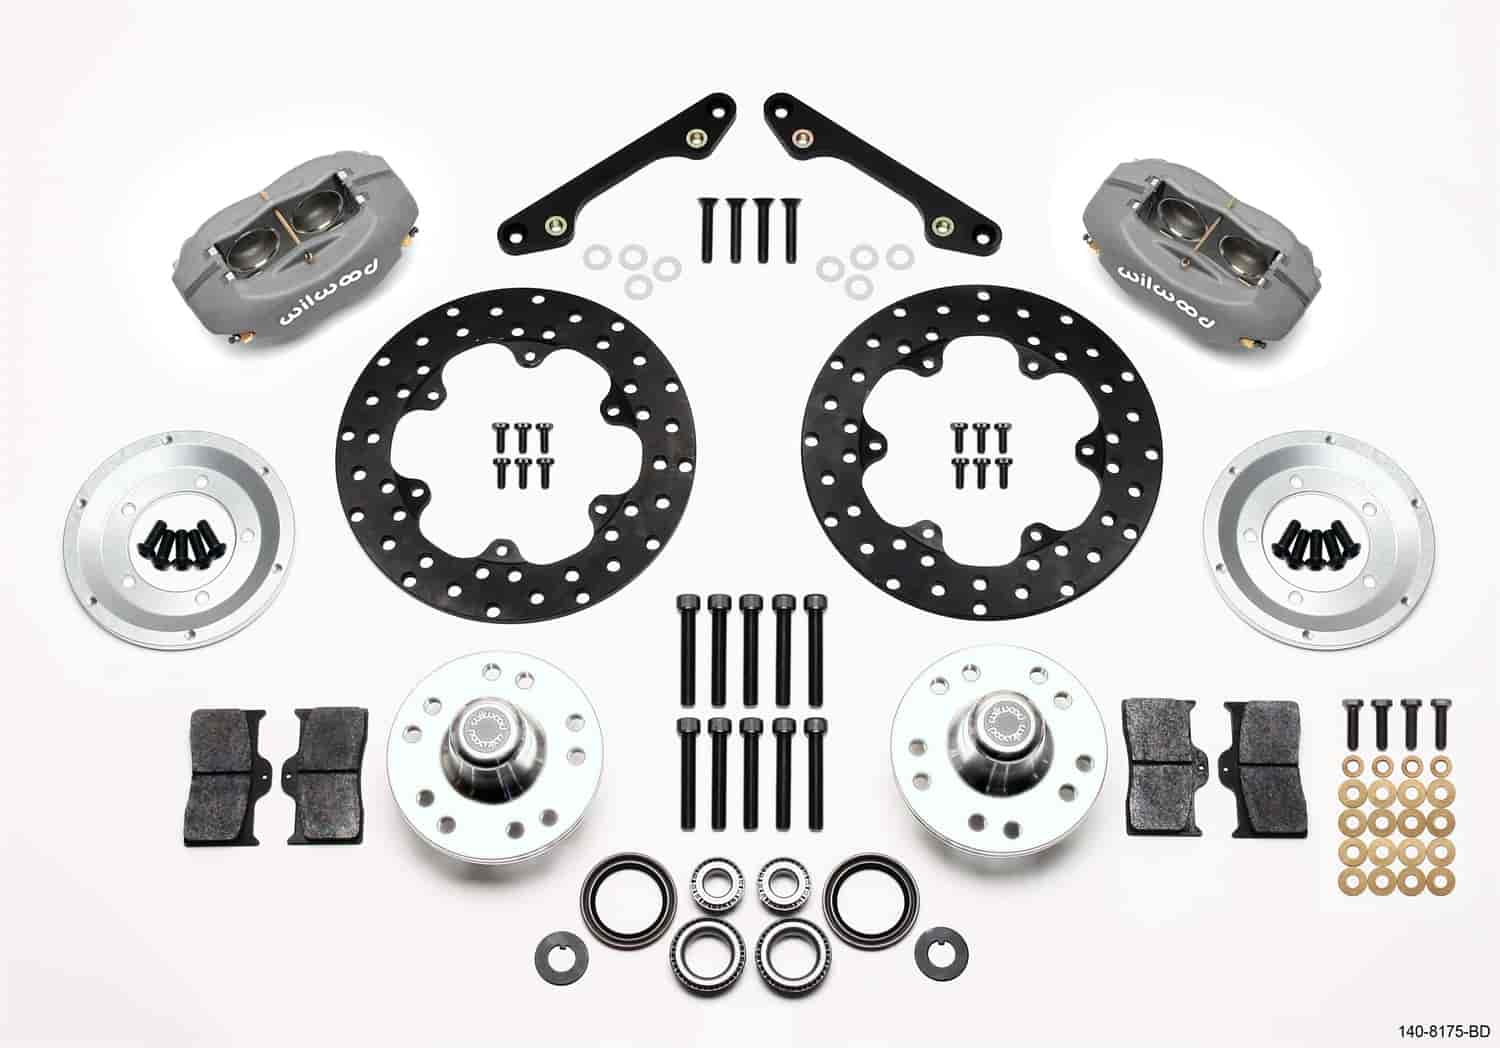 Wilwood 140-8175-BD - Wilwood Forged Dynalite Front Drag Brake Kits